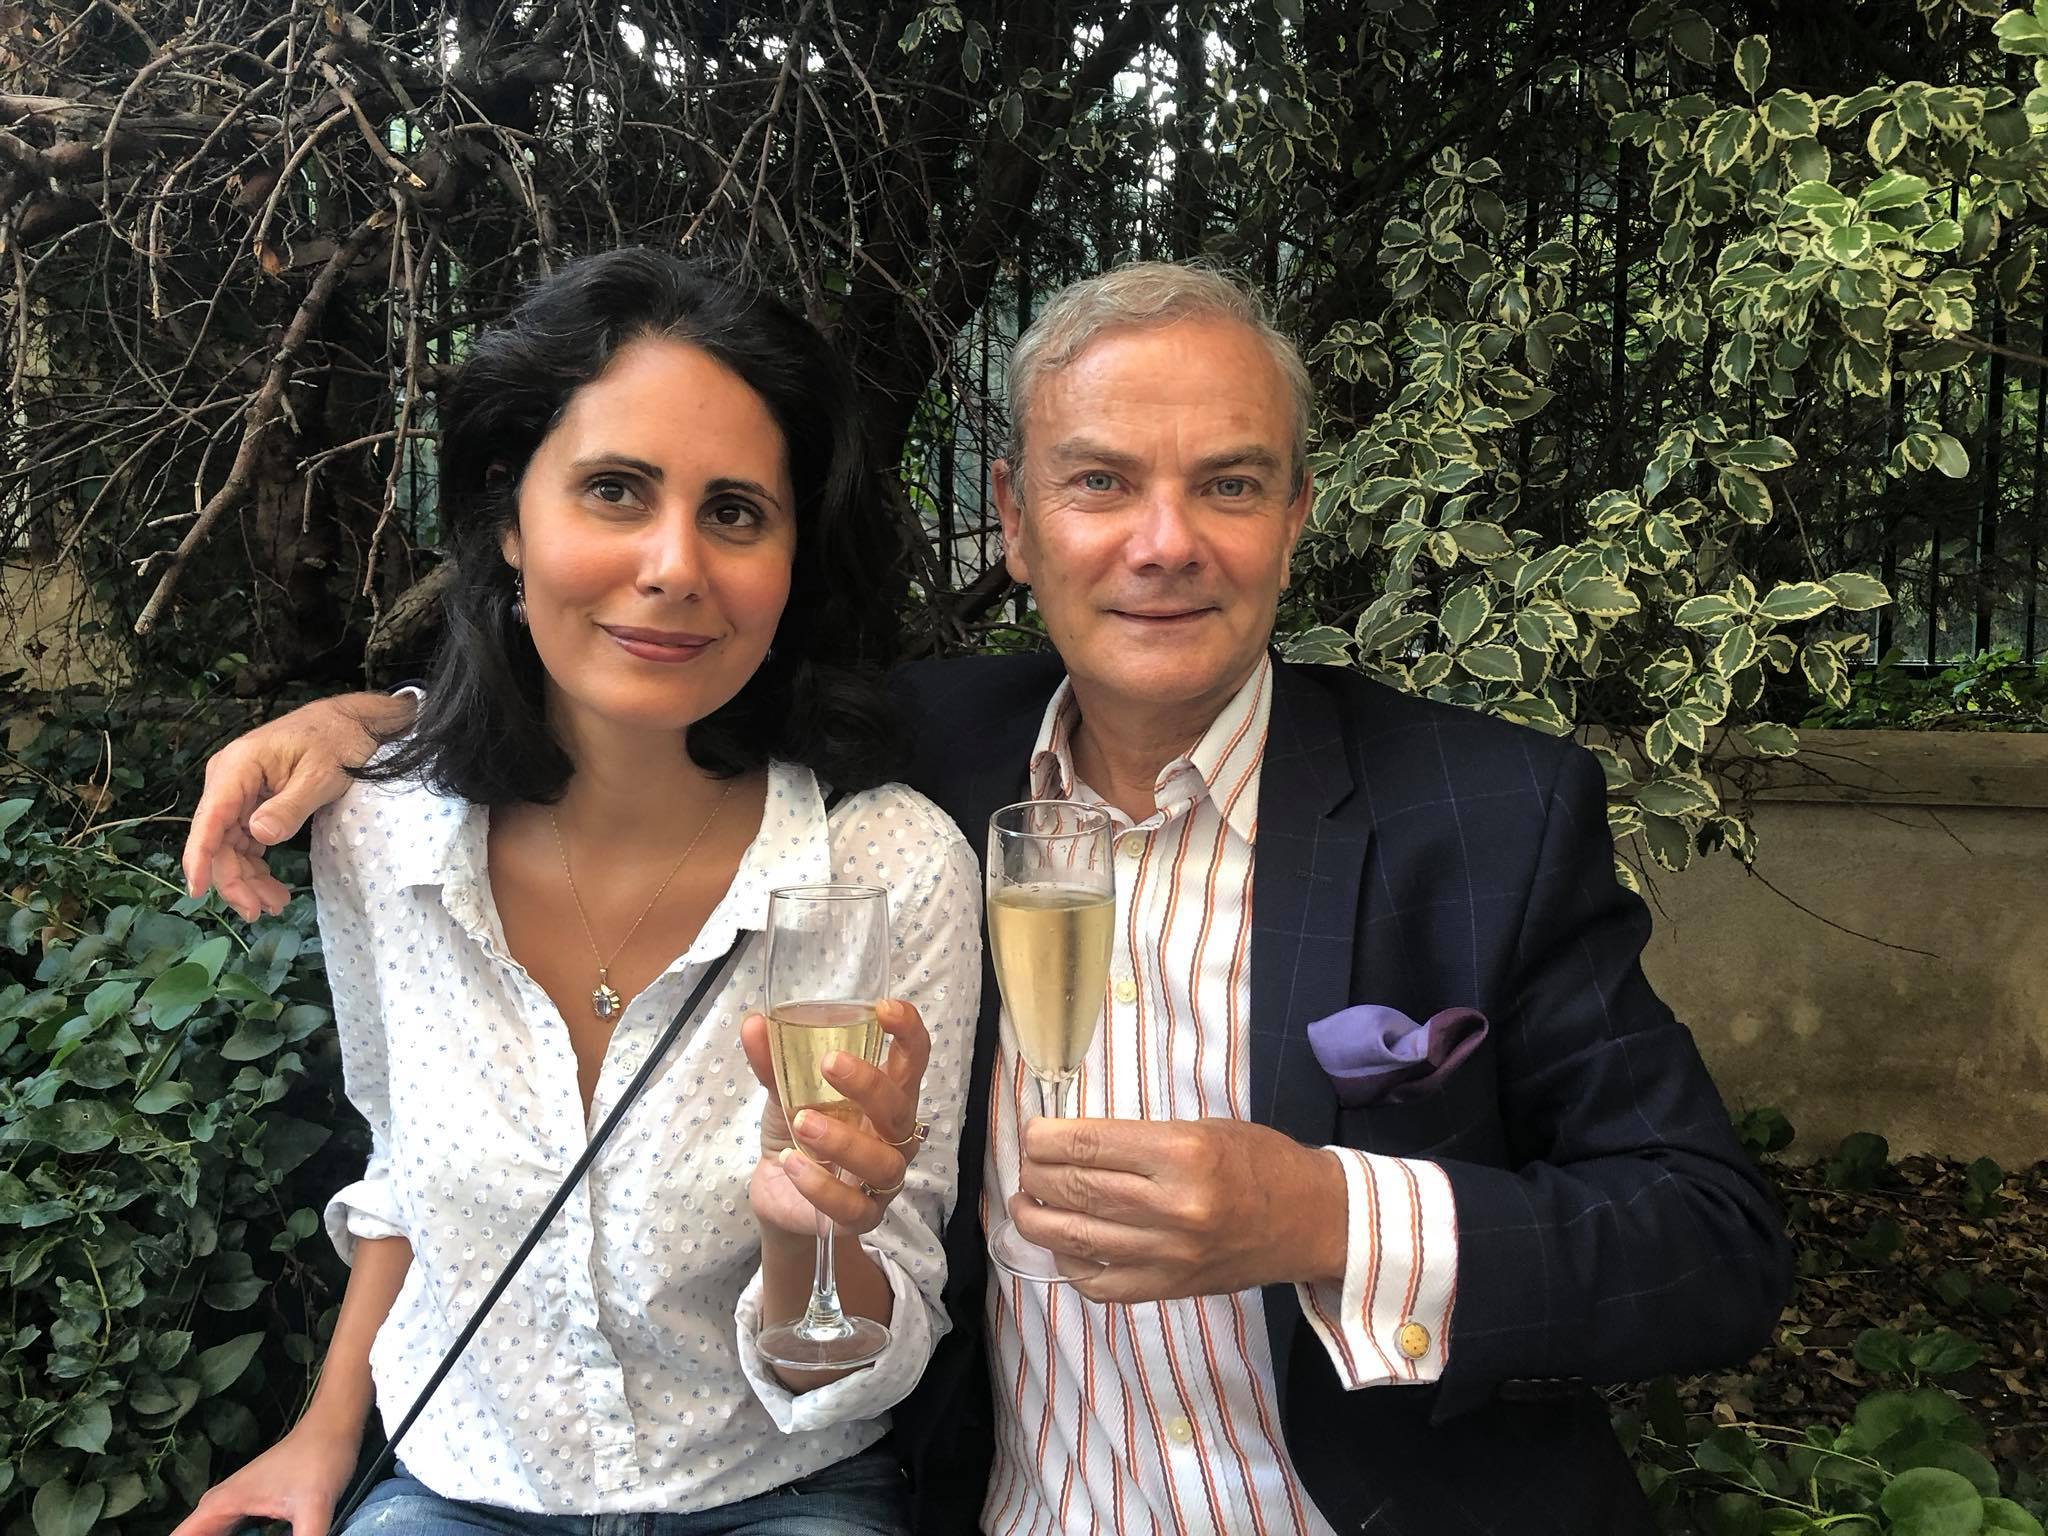 In mode Champagne, Paris with my sweet friend Donia Belhadj at the opening ceremony Agathe Gaillard gallery #HappyPublisher